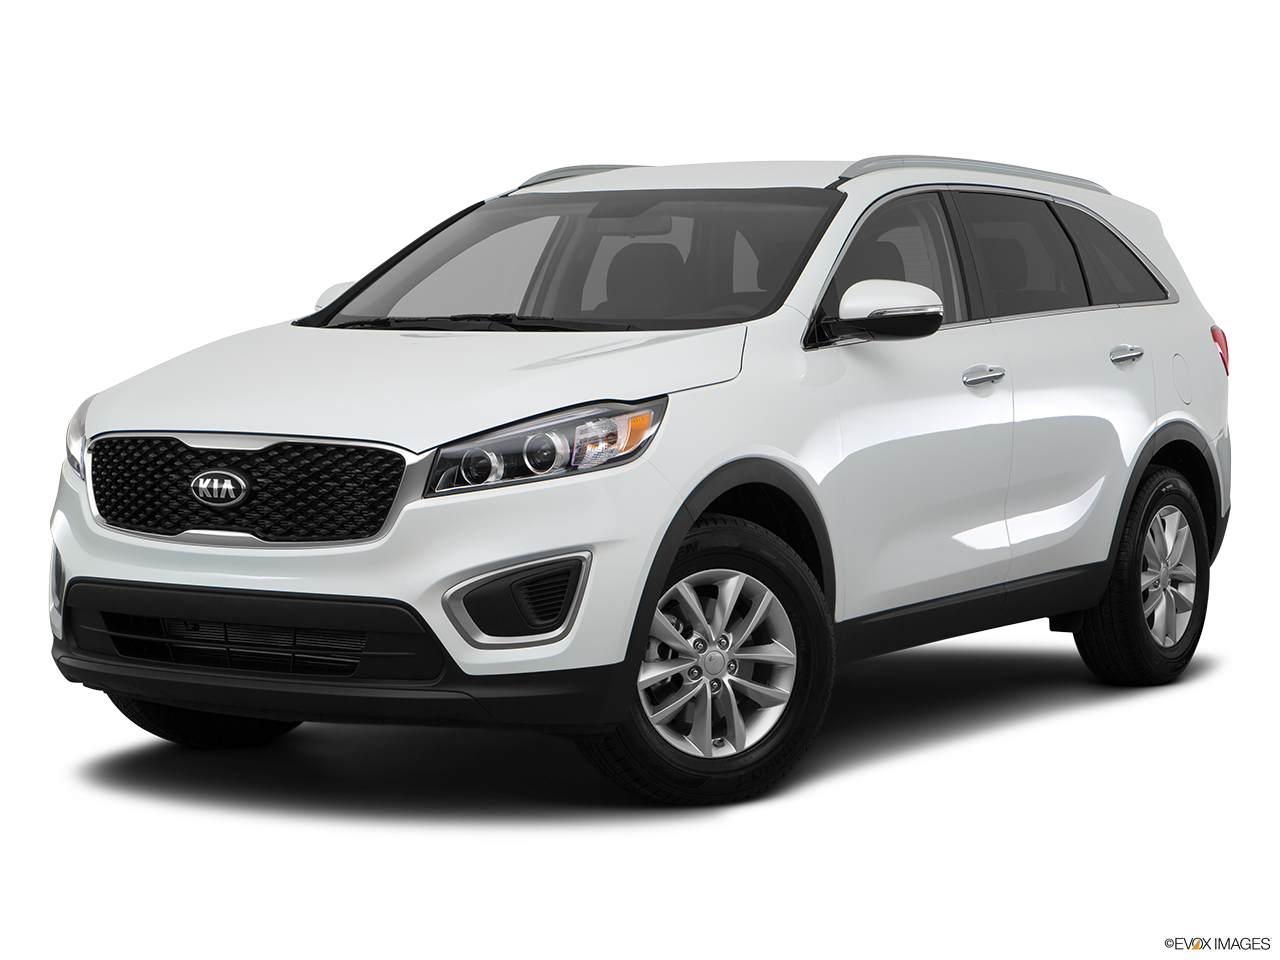 Test Drive A 2017 Kia Sorento at Kia of Alhambra in Alhambra